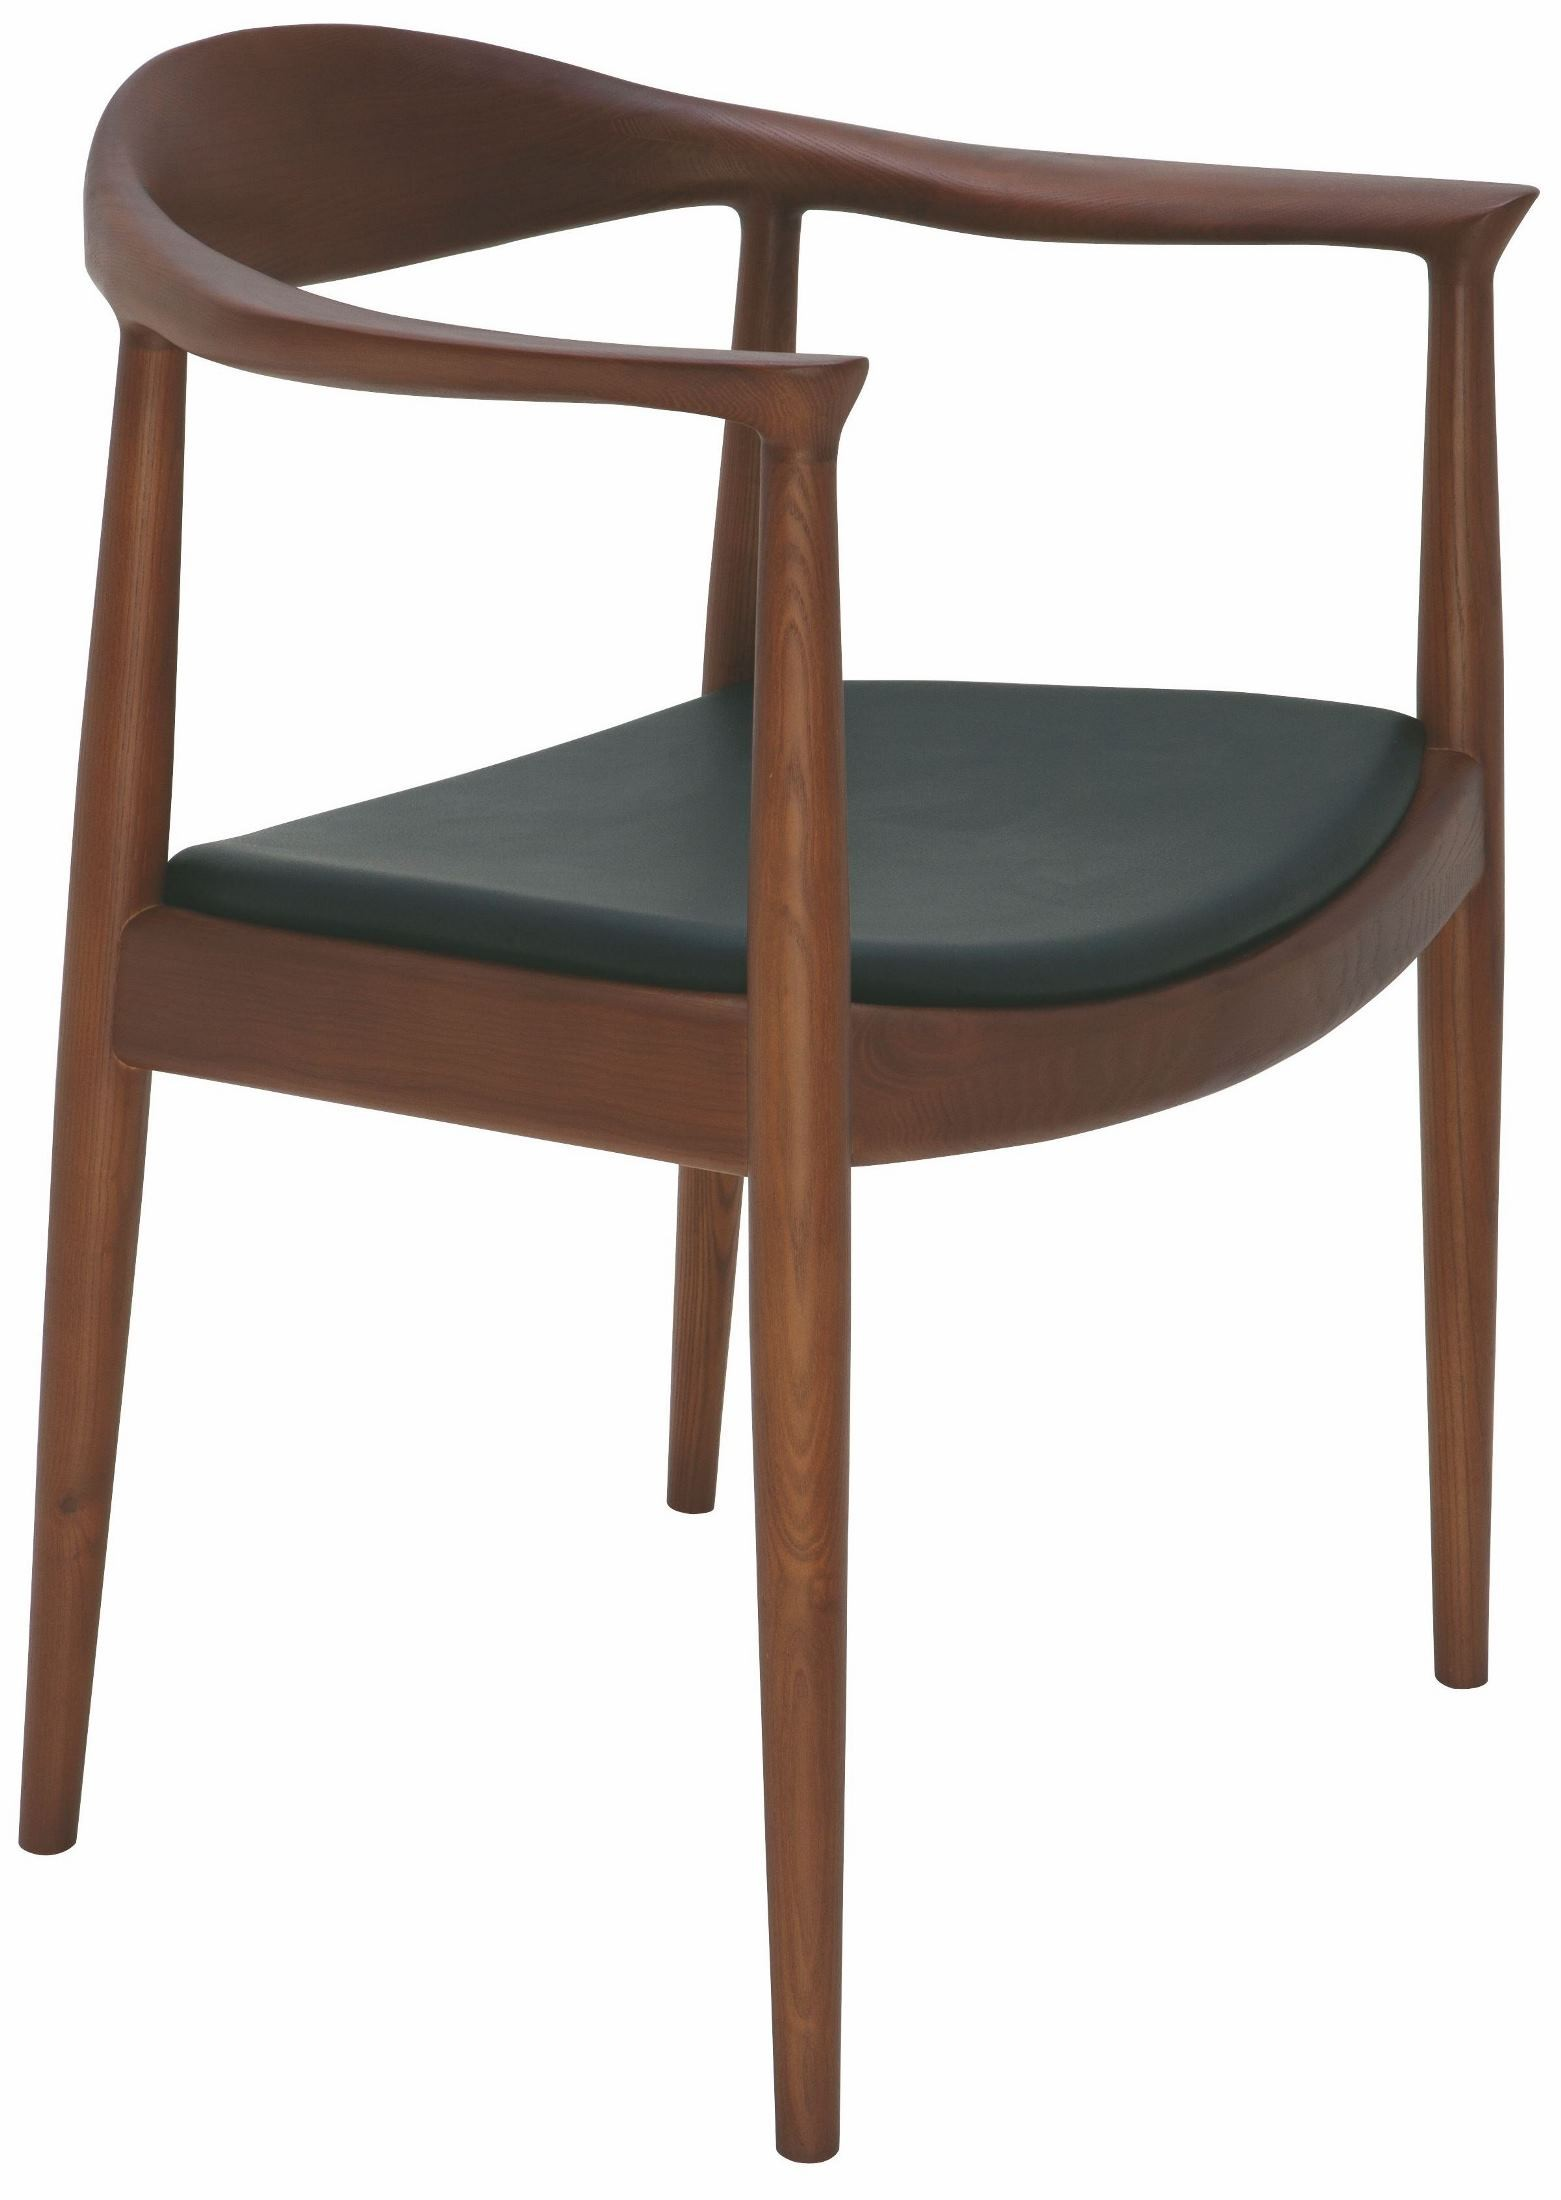 Johan Black Leather Dining Chair From Nuevo Coleman Furniture